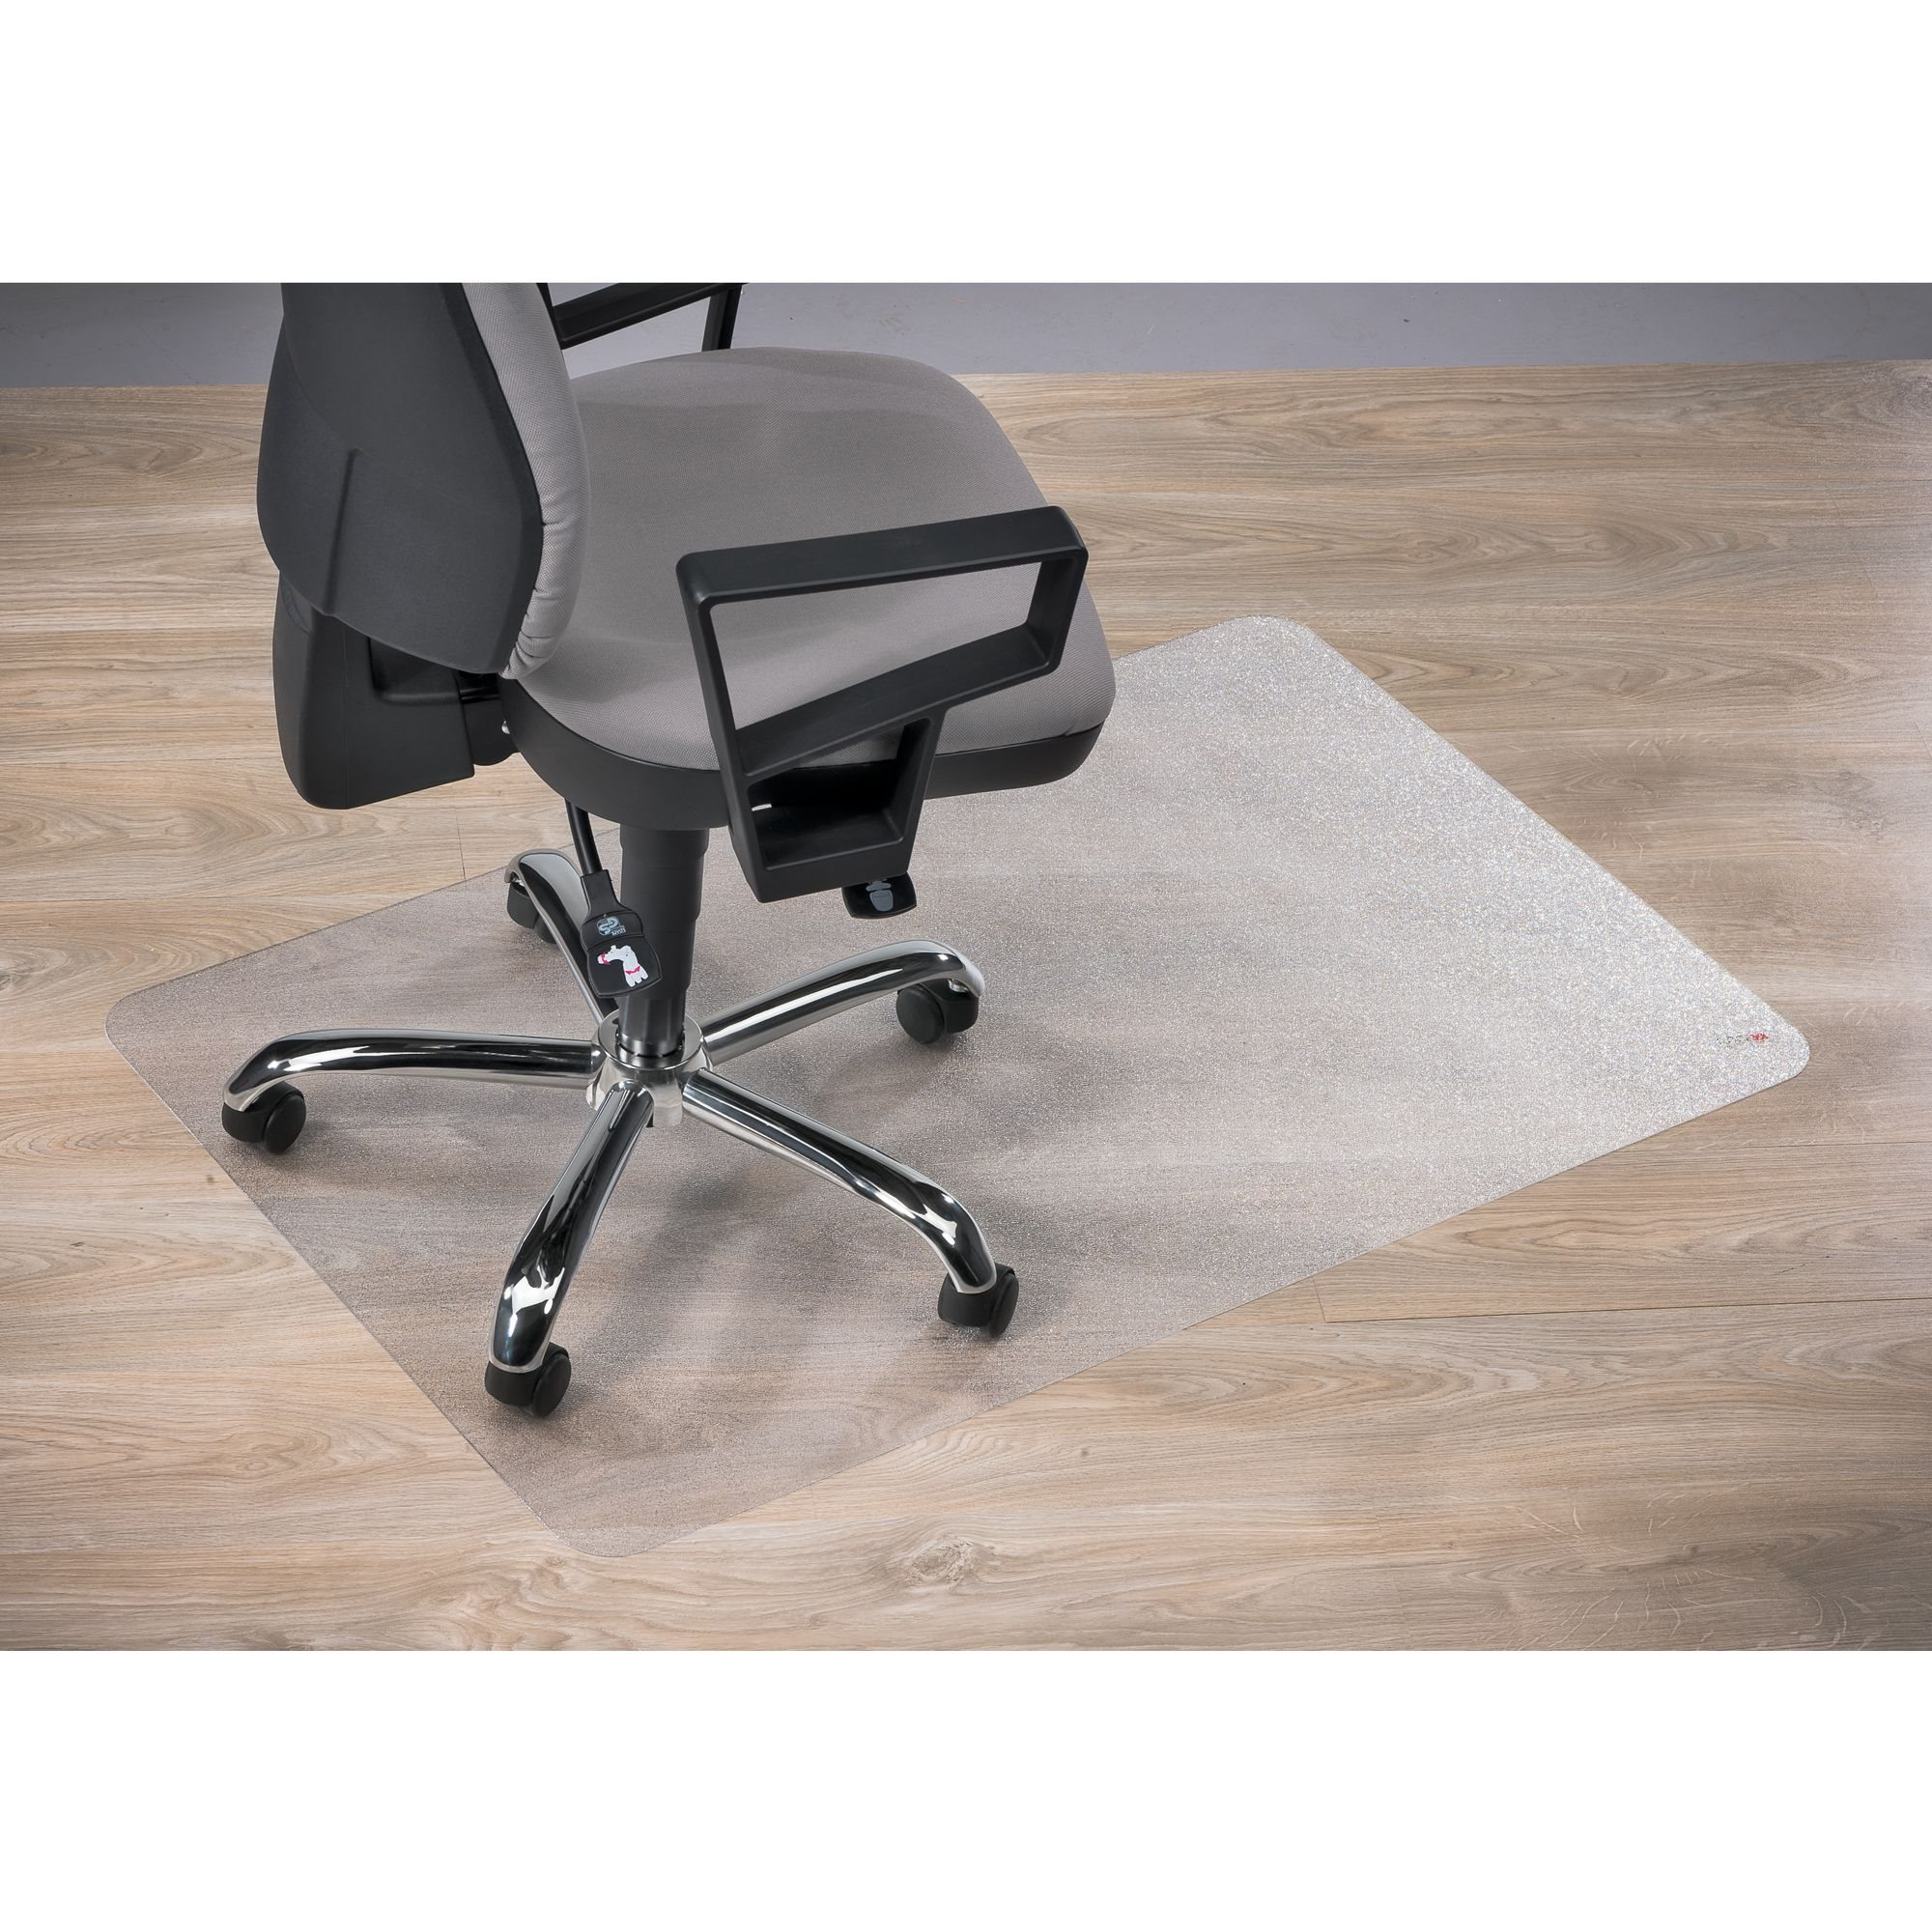 Recycled floor protection 120x150 xm